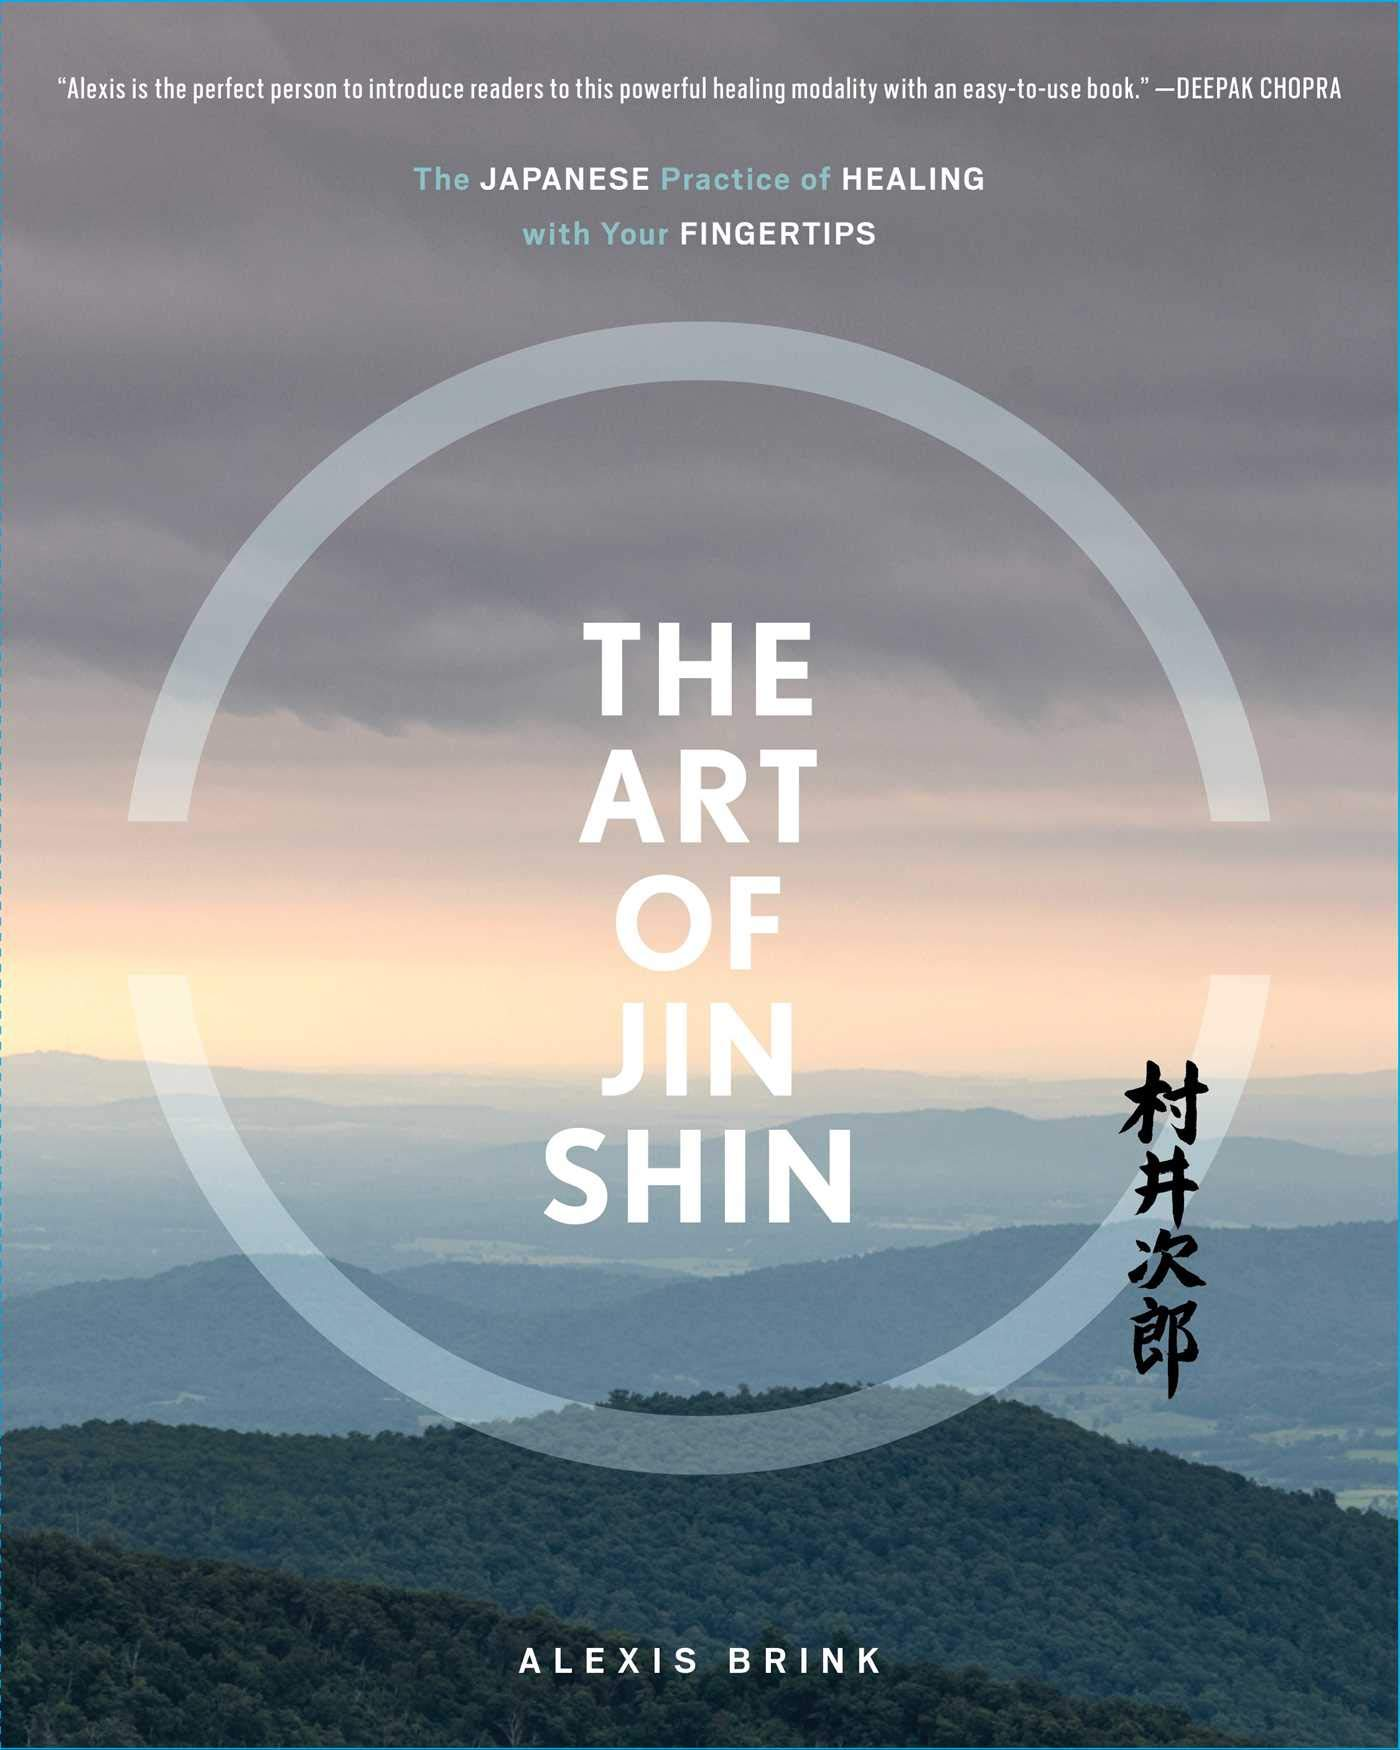 The Art of Jin Shin: The Japanese Practice of Healing with Your Fingertips (English Edition)